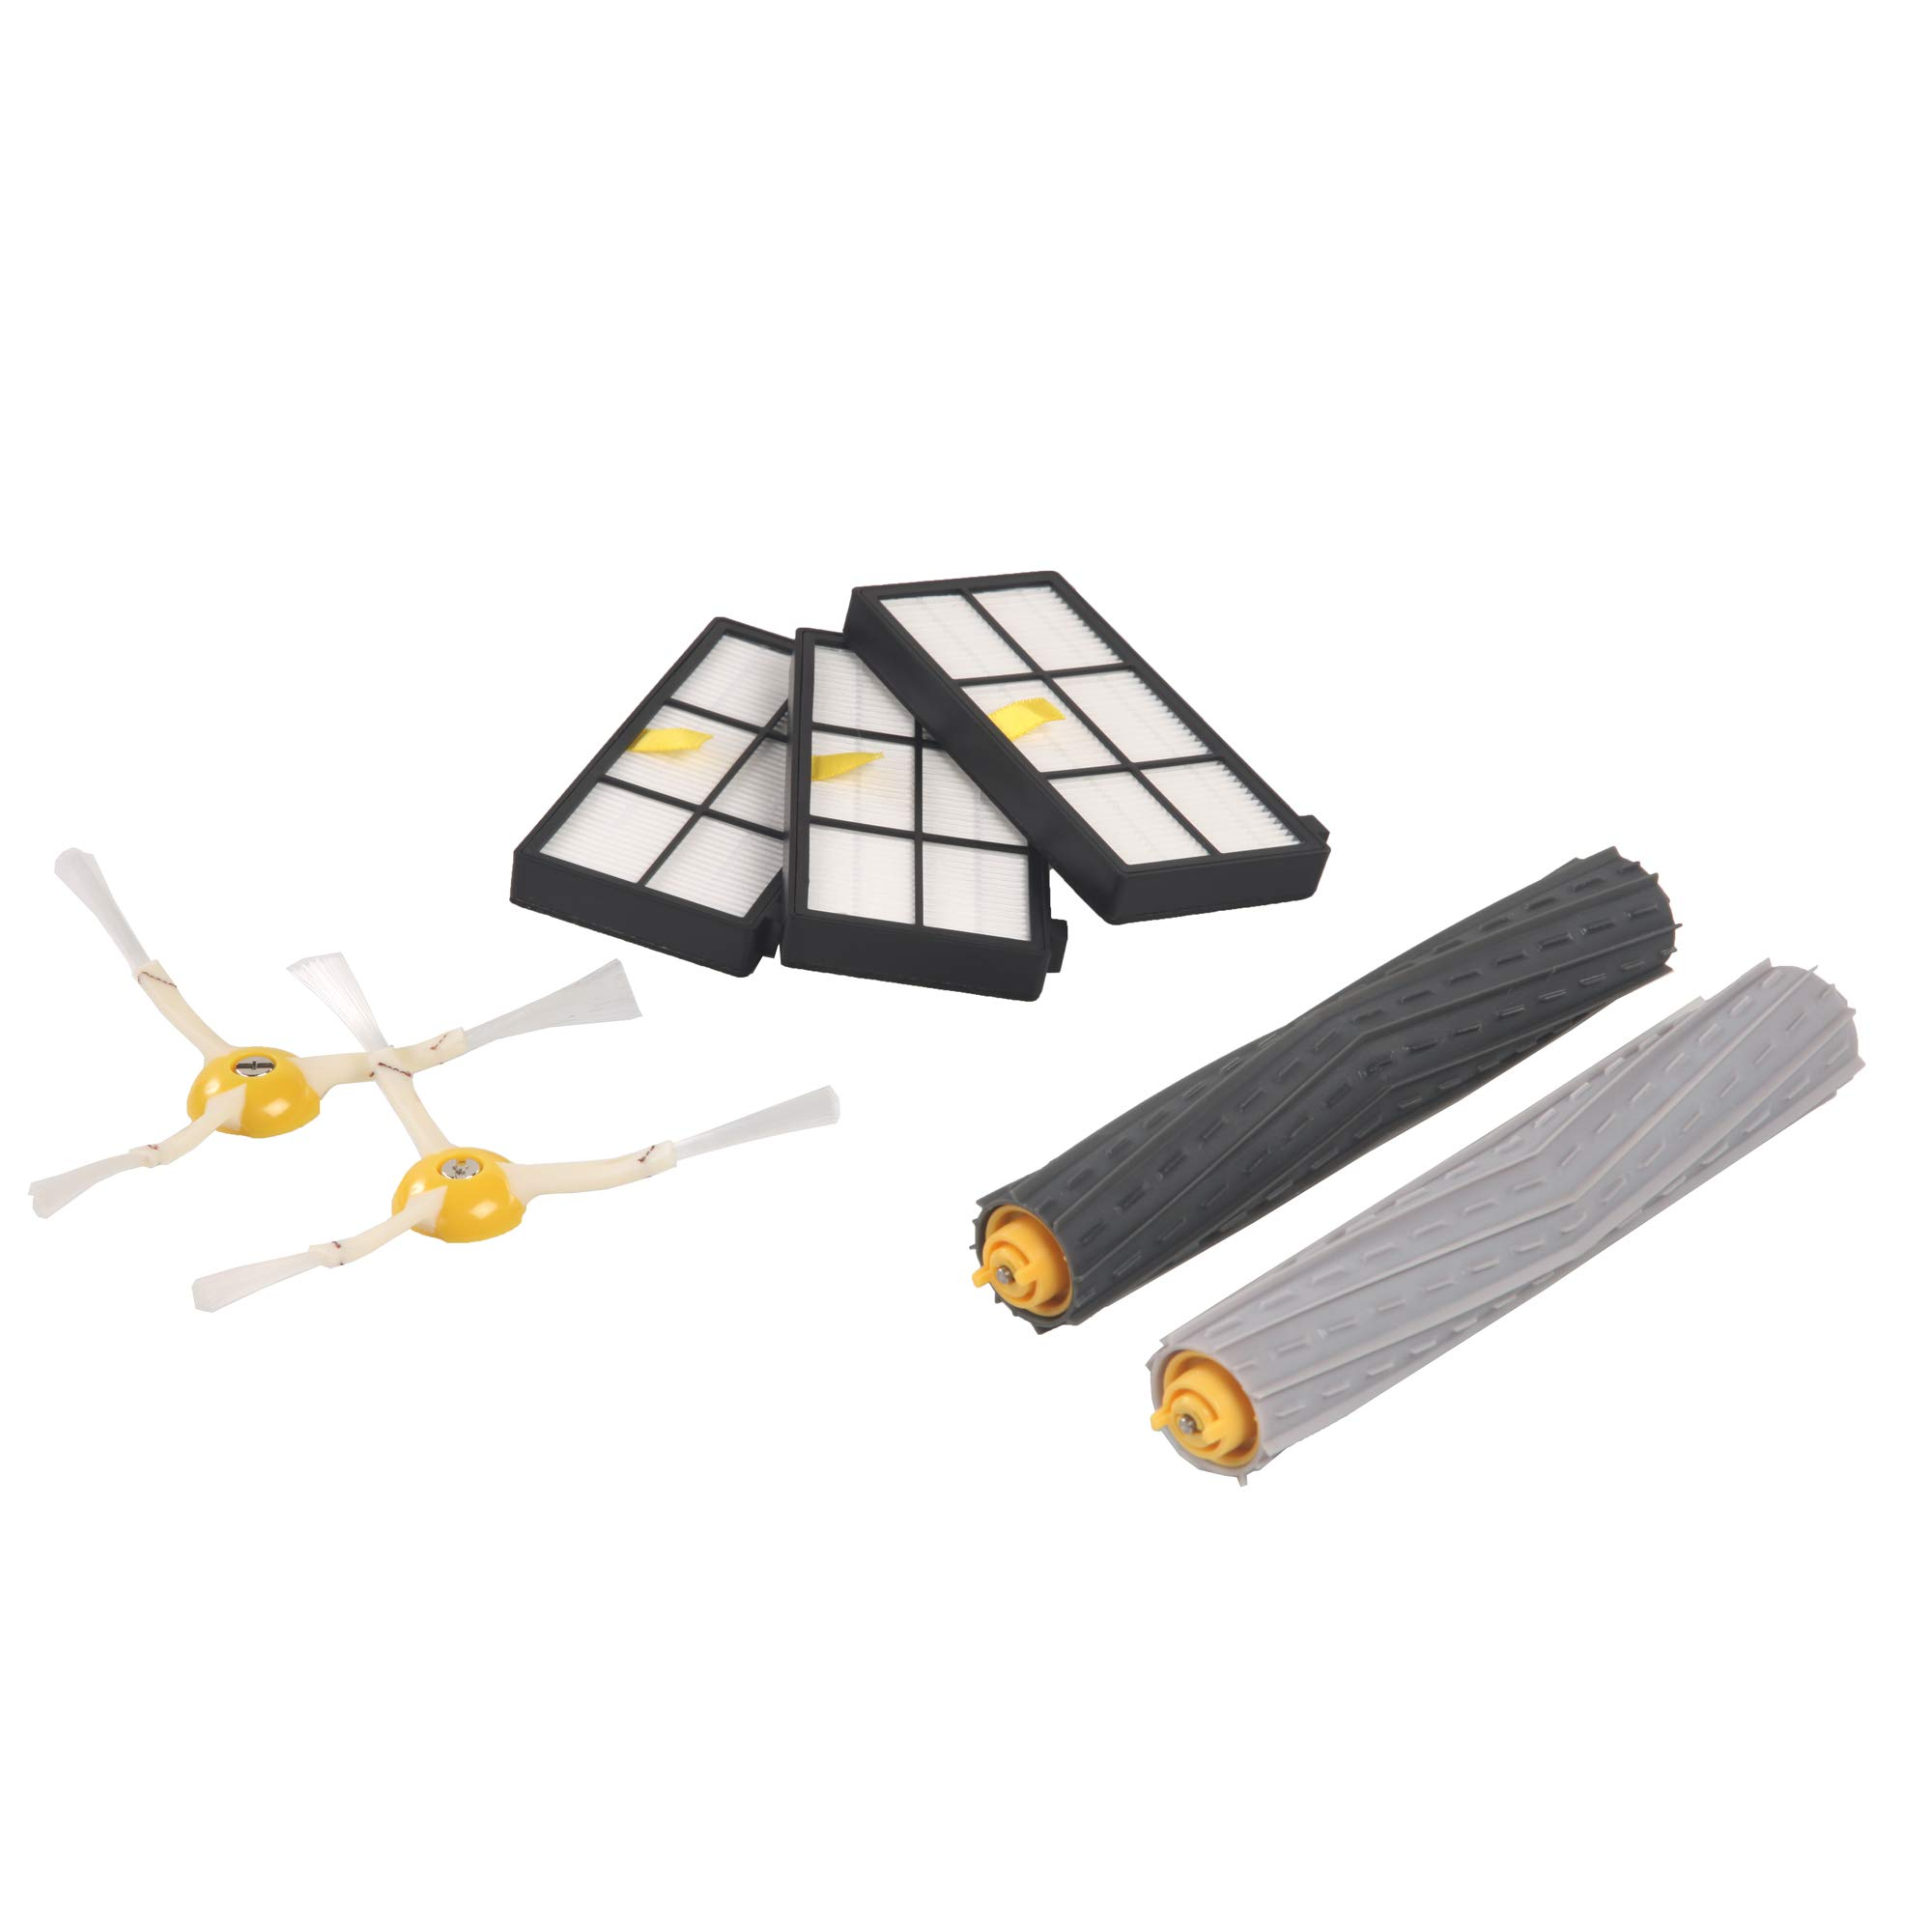 iRobot Authentic Replacement Parts-  Roomba 800 and 900 Series Replenishment Kit (3 AeroForce Filters, 2 Spinning Side Brushes, and 1 Set of Multi-Surface Rubber Brushes) by iRobot